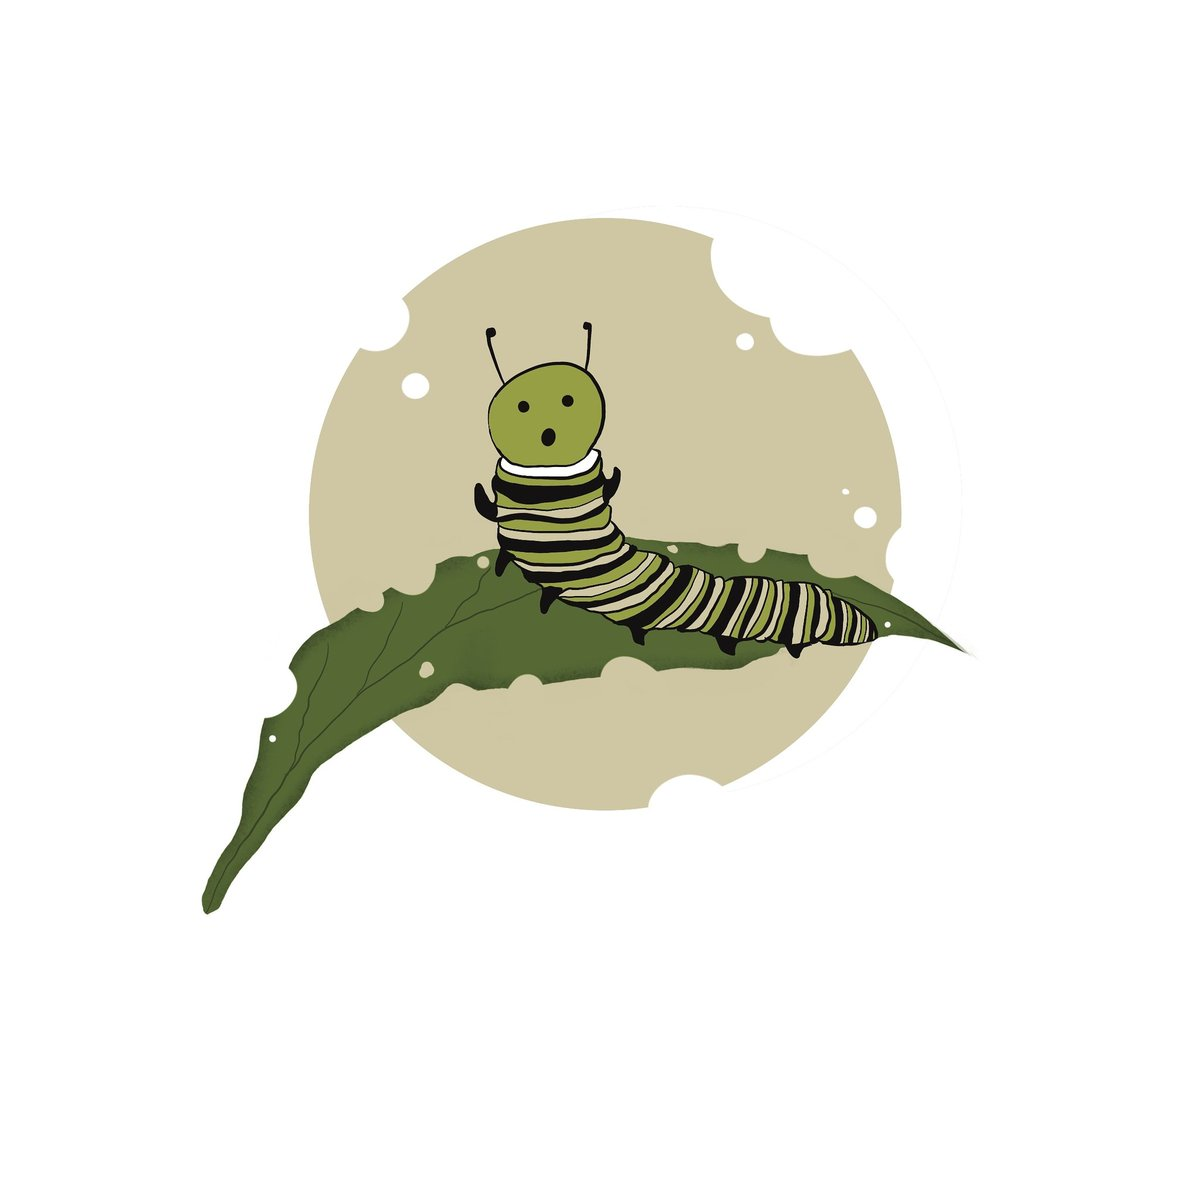 Caught red handed 😜 #oviarts   #digitalart #art #inspiration #eat #food #caterpillar #insect #happiness #art #happy